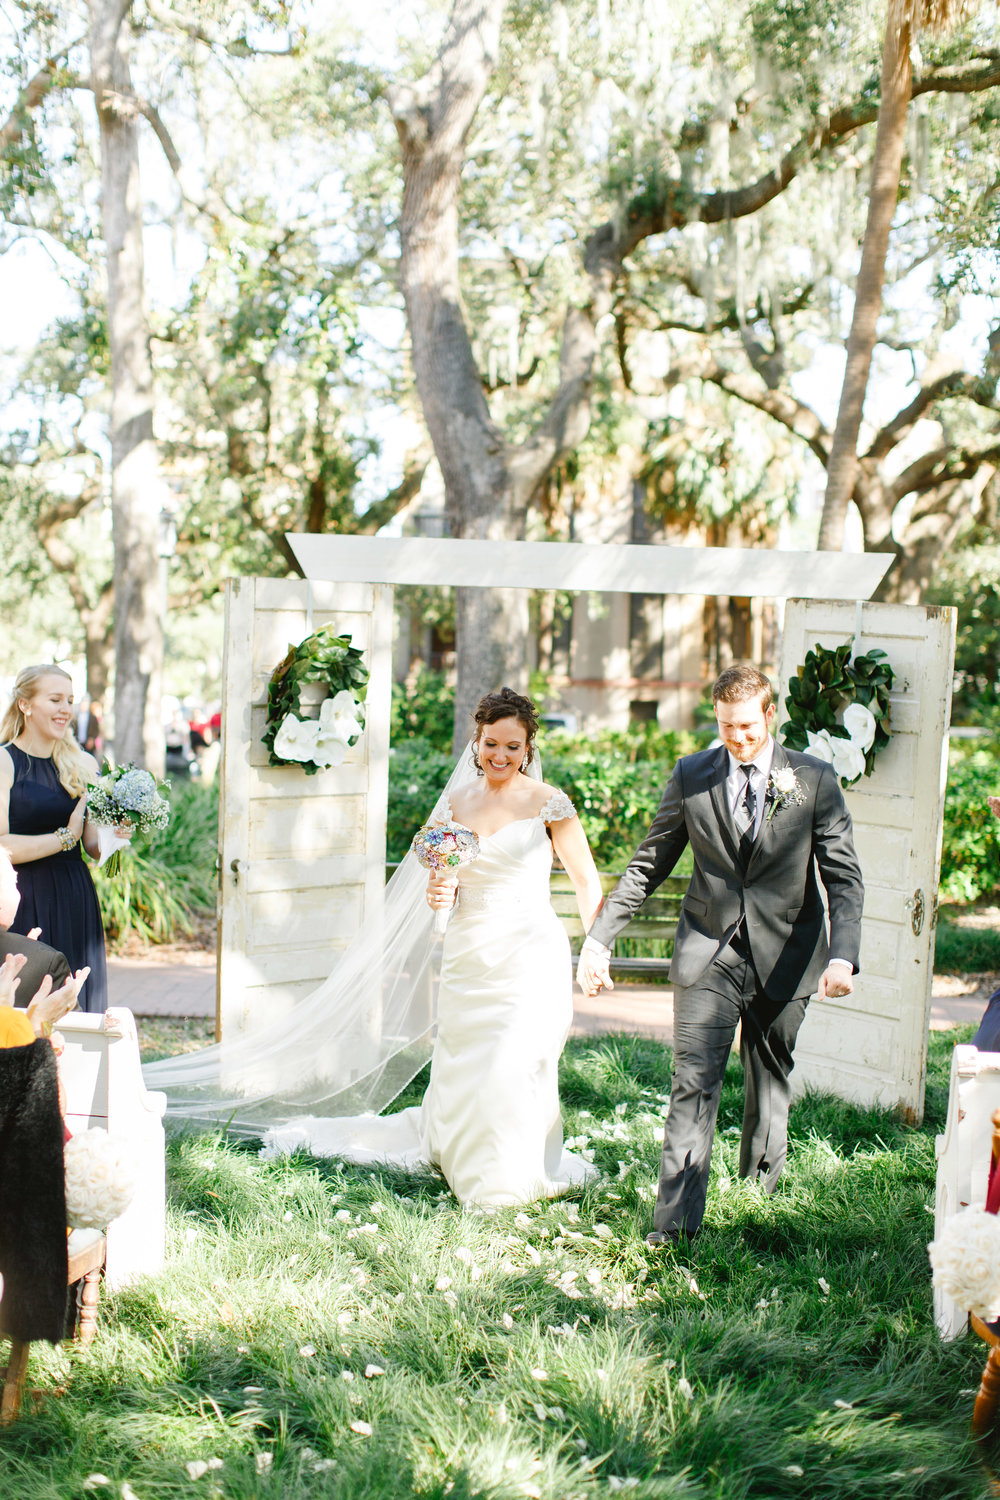 ivory-and-beau-bridal-boutique-aubrie-and-adam-the-happy-bloom-photography-savannah-wedding-planner-savannah-wedding-coordinator-23.jpg